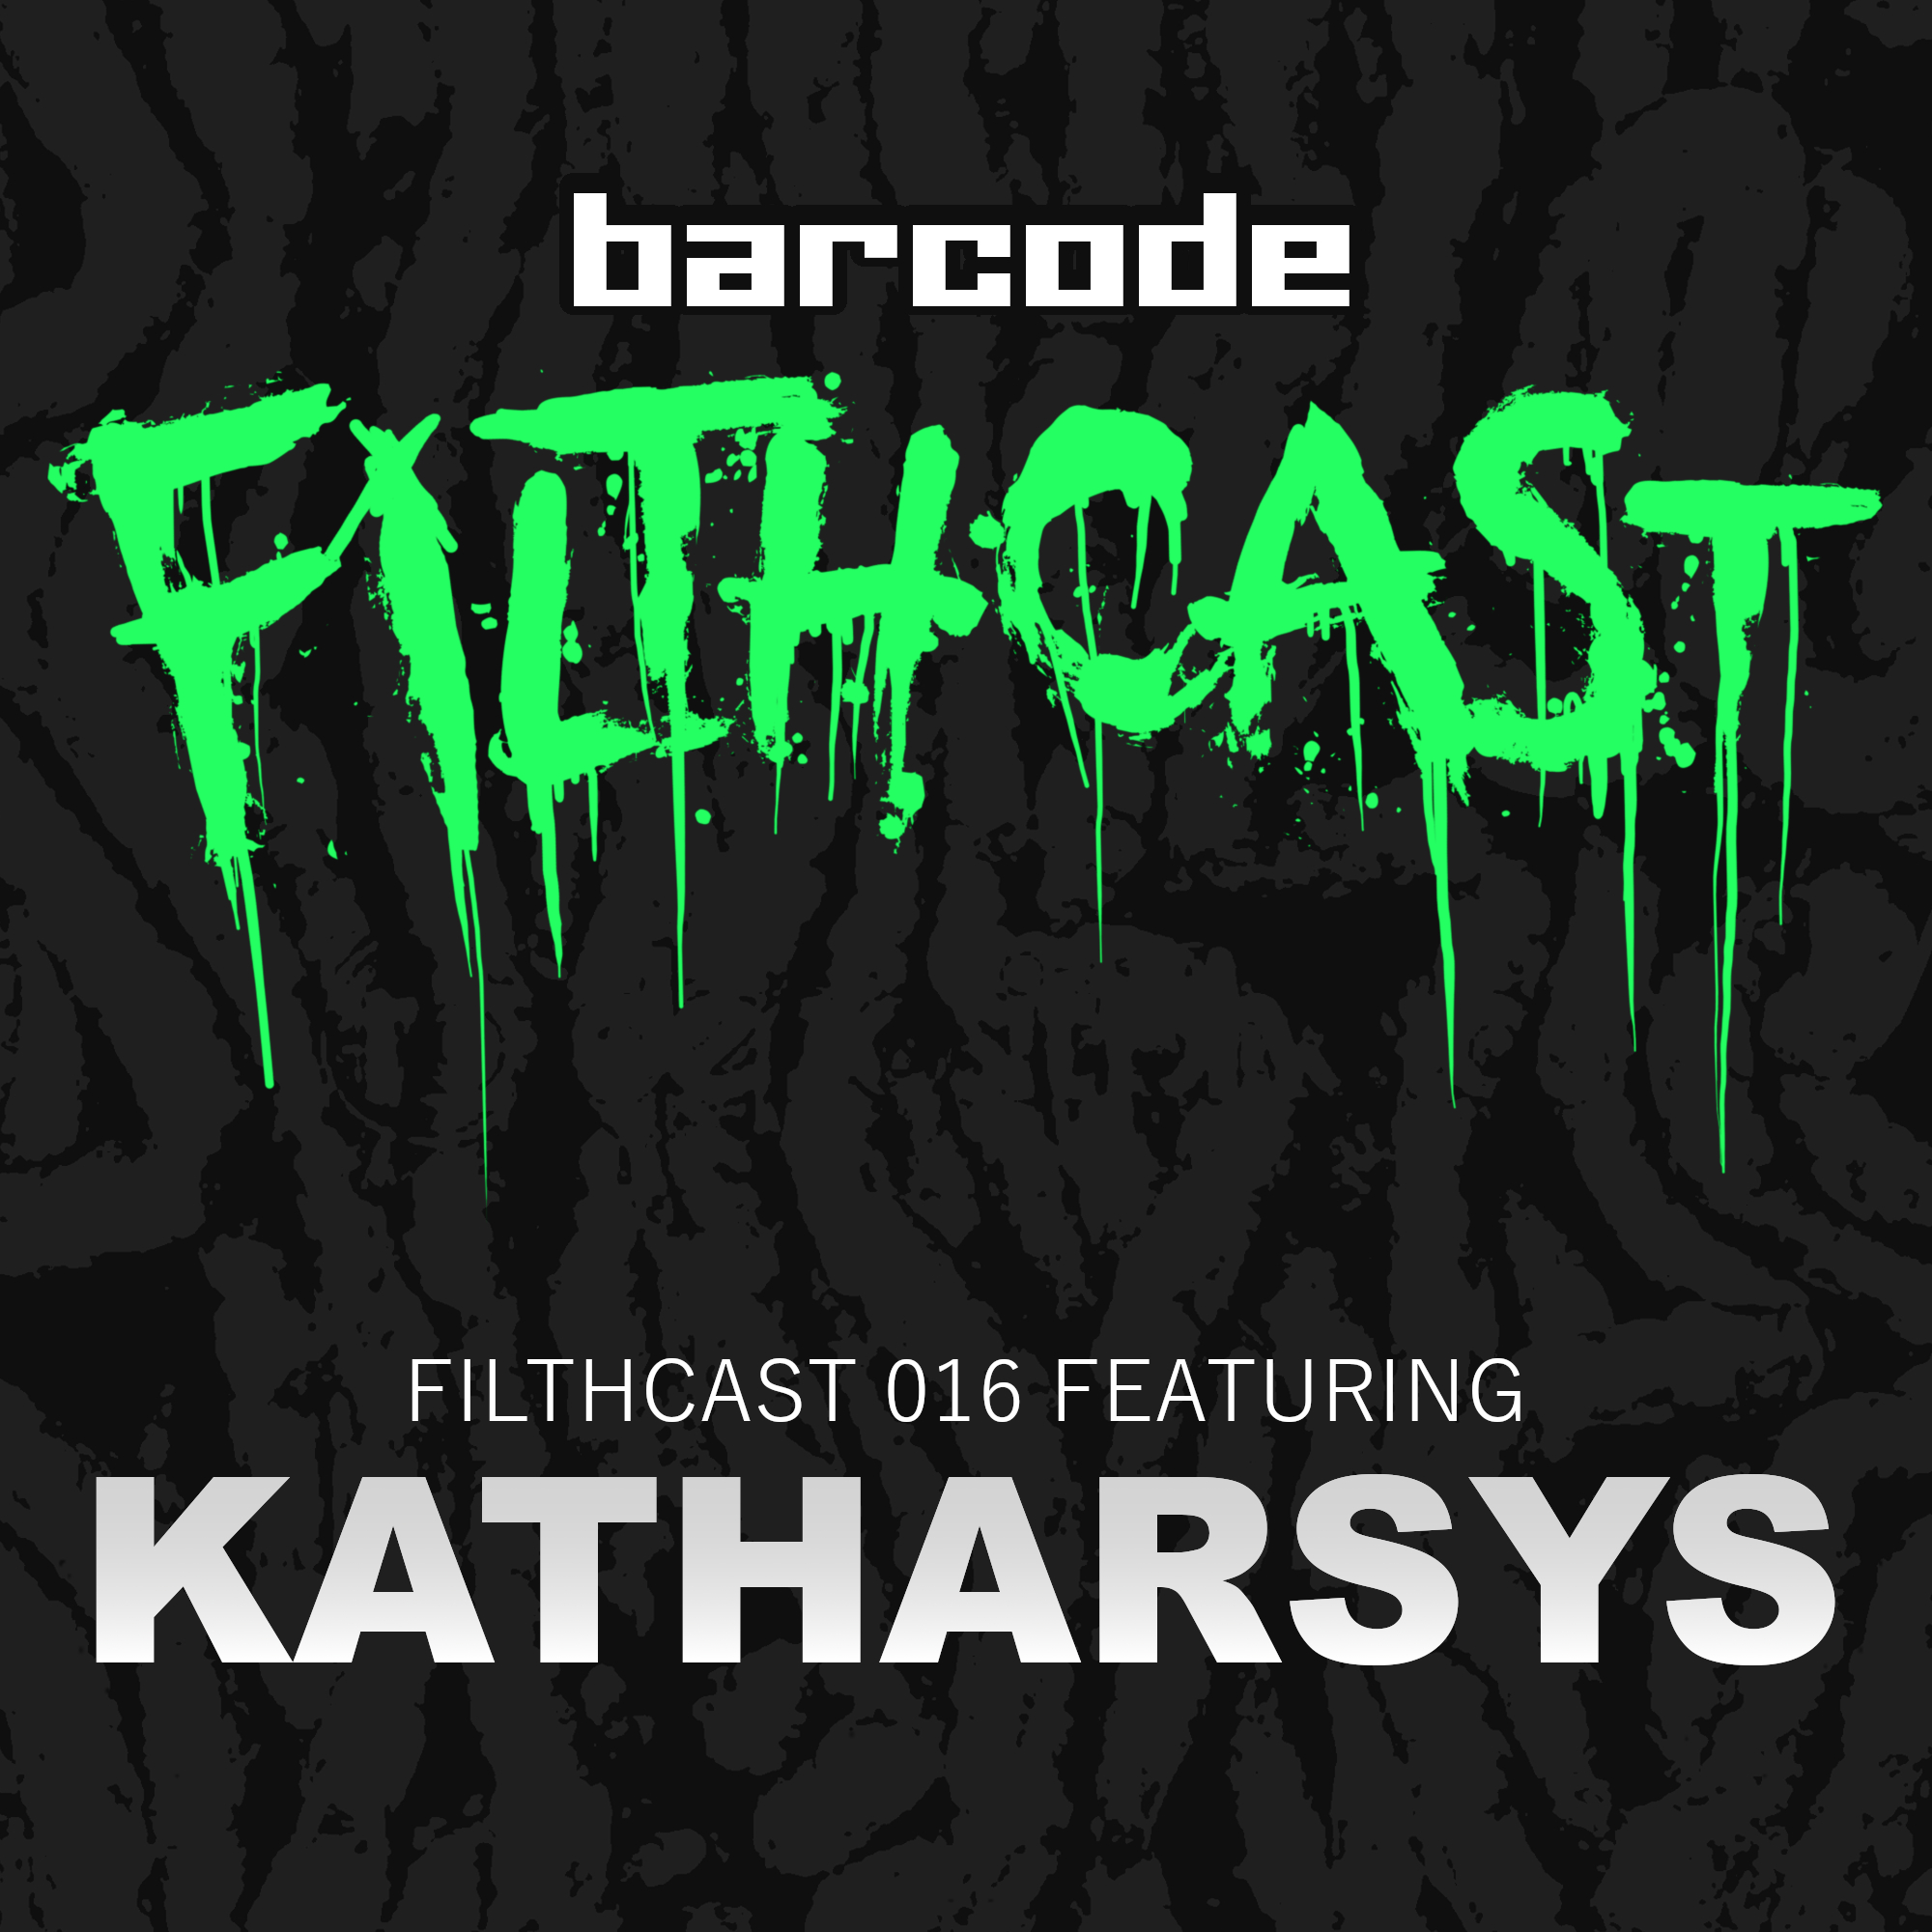 French newcomers Katharsys have quickly become one of the few promising drum and bass acts to push the genre forward. The duo have a unique dancefloor-orientated sound inspired by early Konflict and Tech Itch, and are set to release a number of great tracks in 2010 including Walkin Device on Barcode.